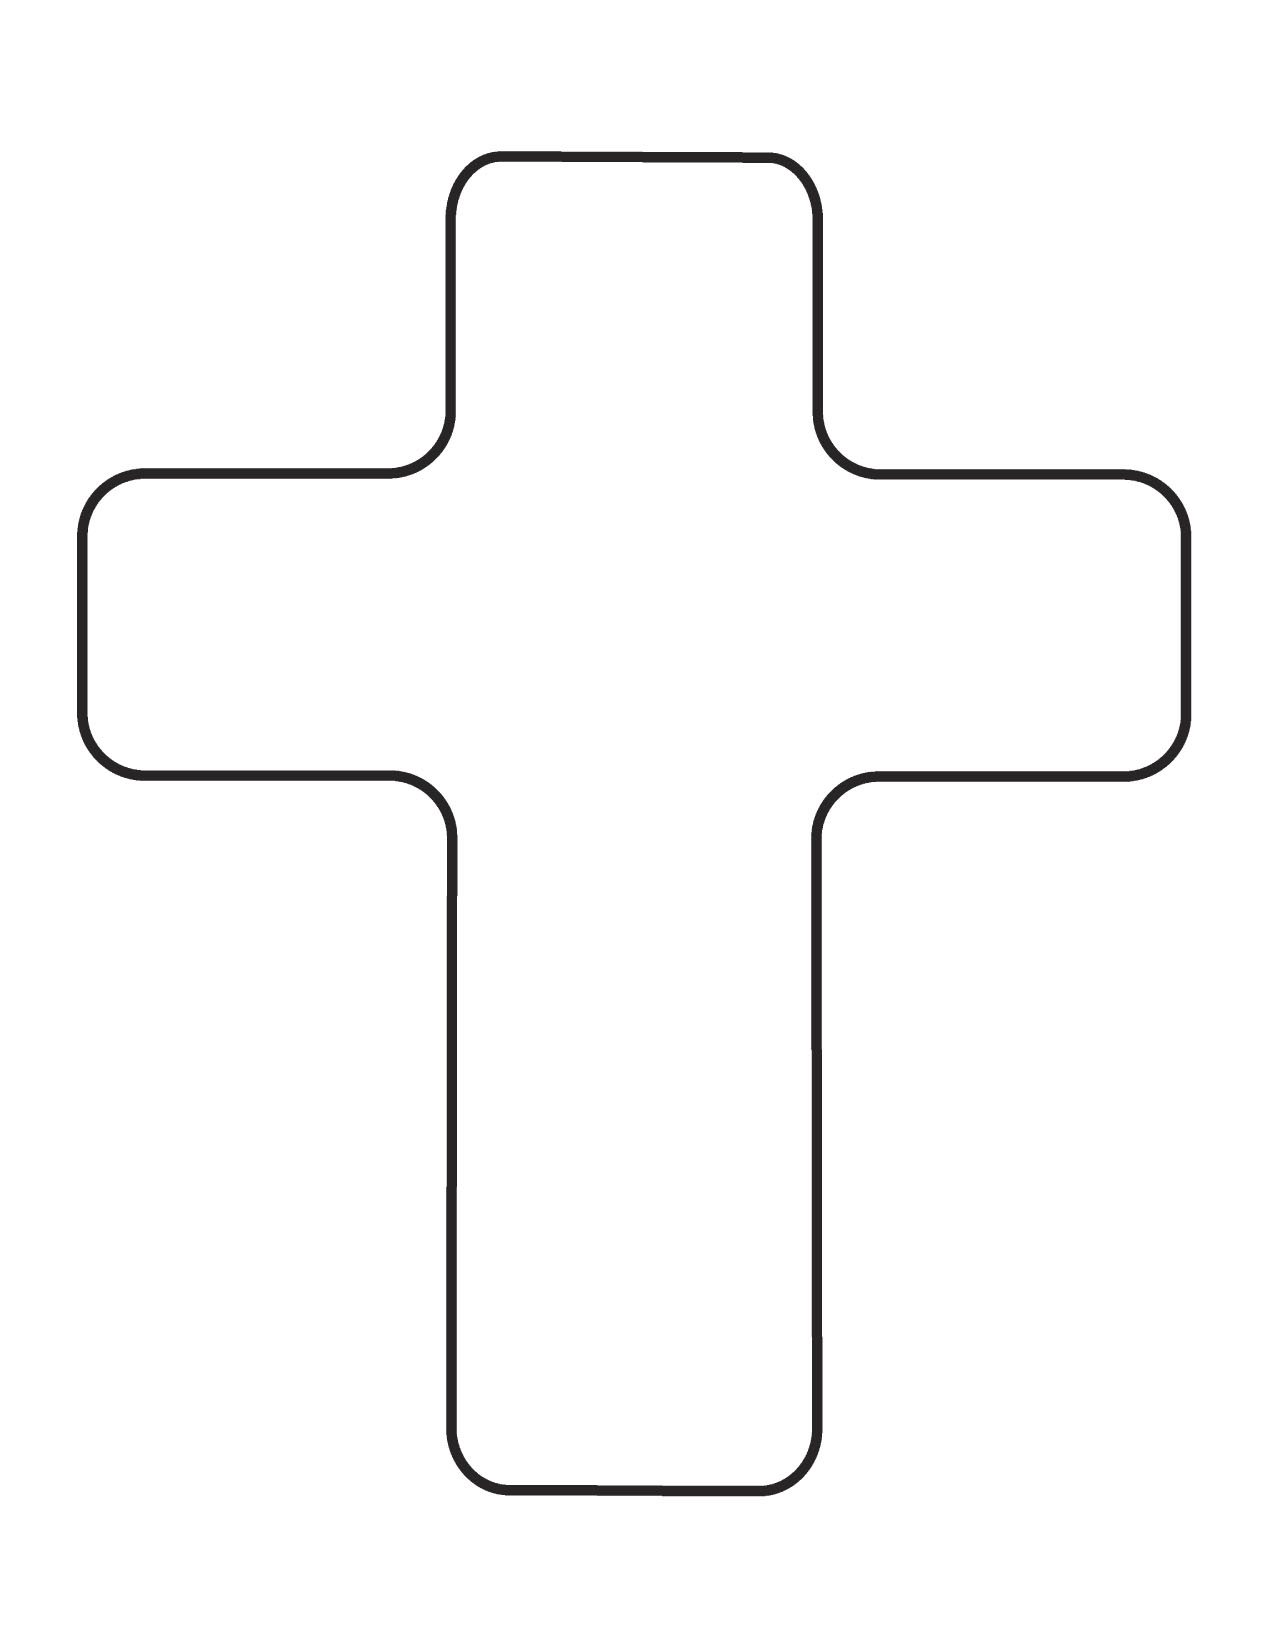 Crucifix Clipart Black And White | Clipart Panda - Free Clipart Images